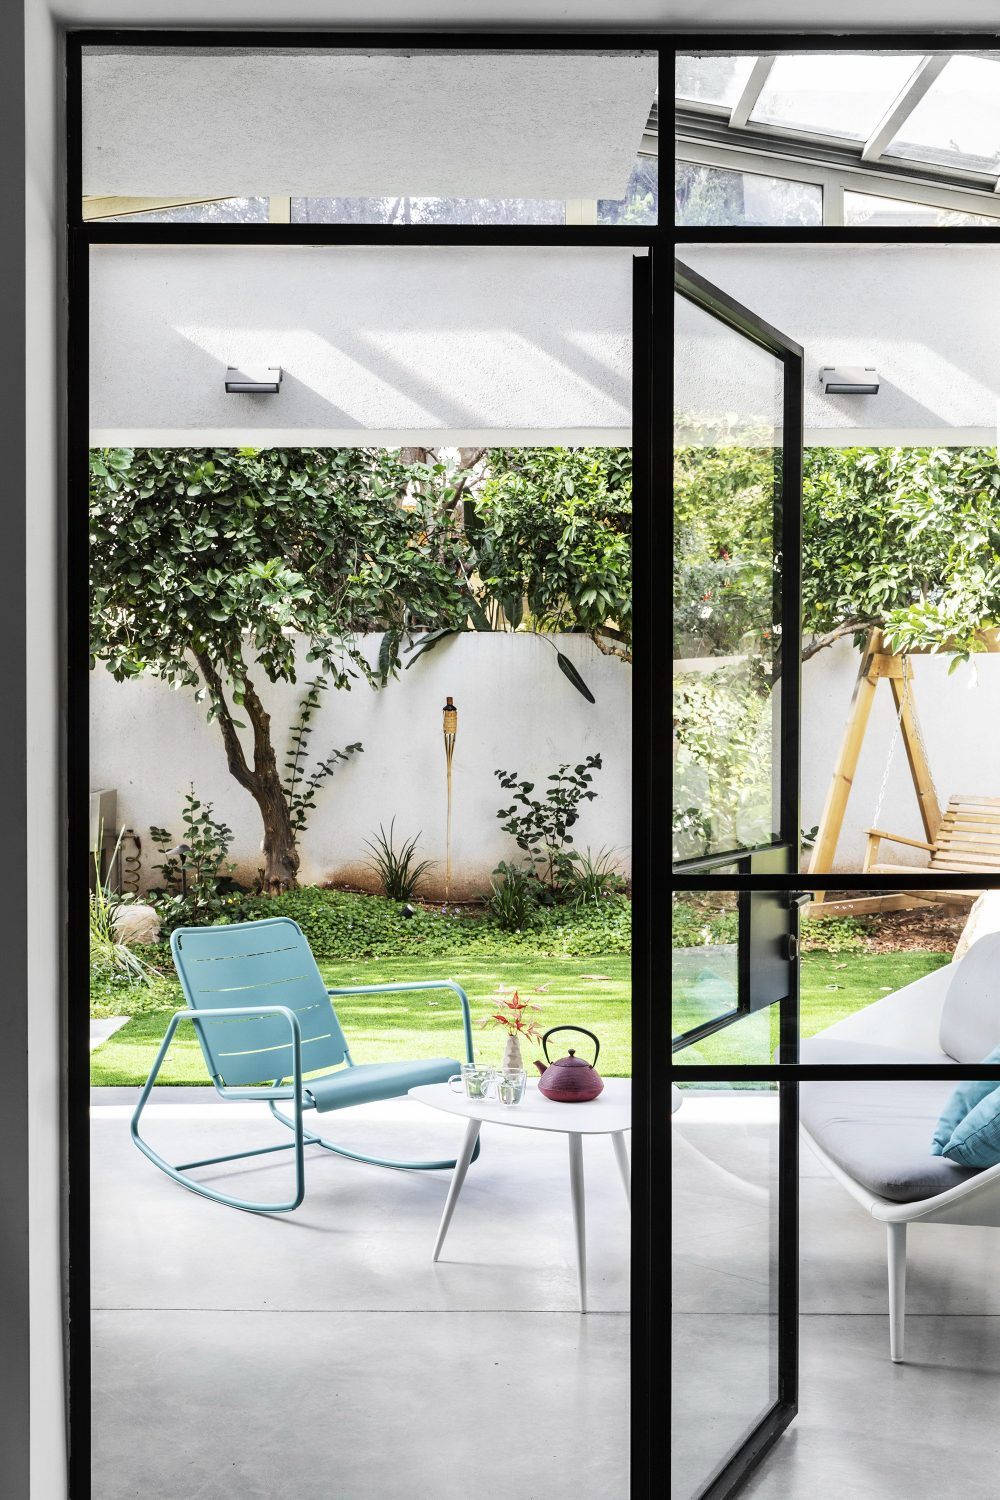 MG House | Home Renovation by Maya Sheinberger